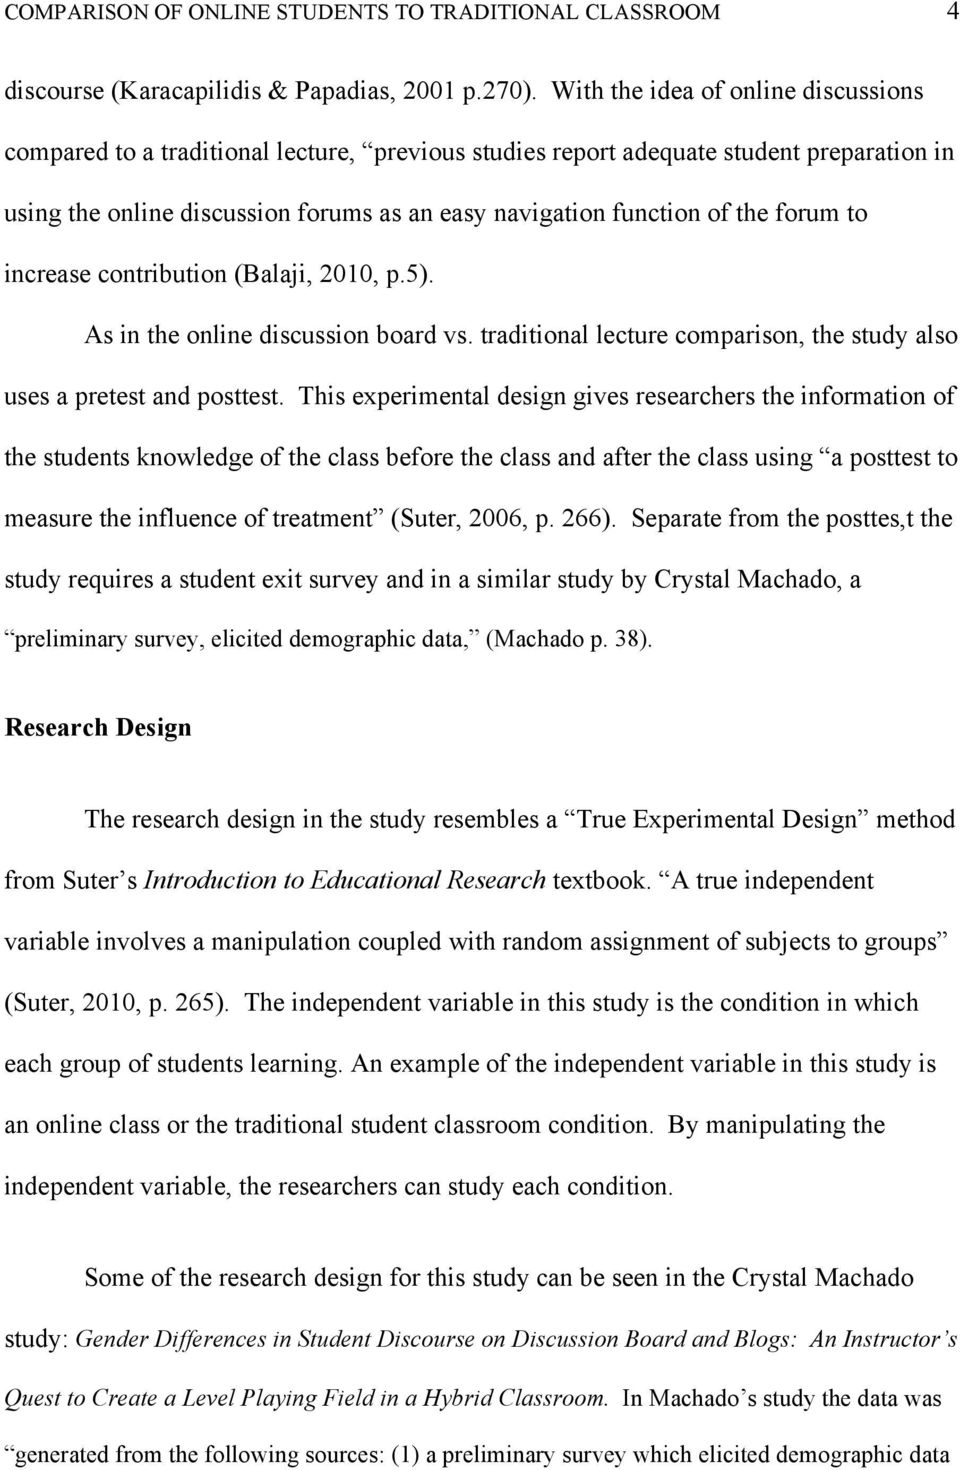 Running Head: COMPARISON OF ONLINE STUDENTS TO TRADITIONAL 1  The